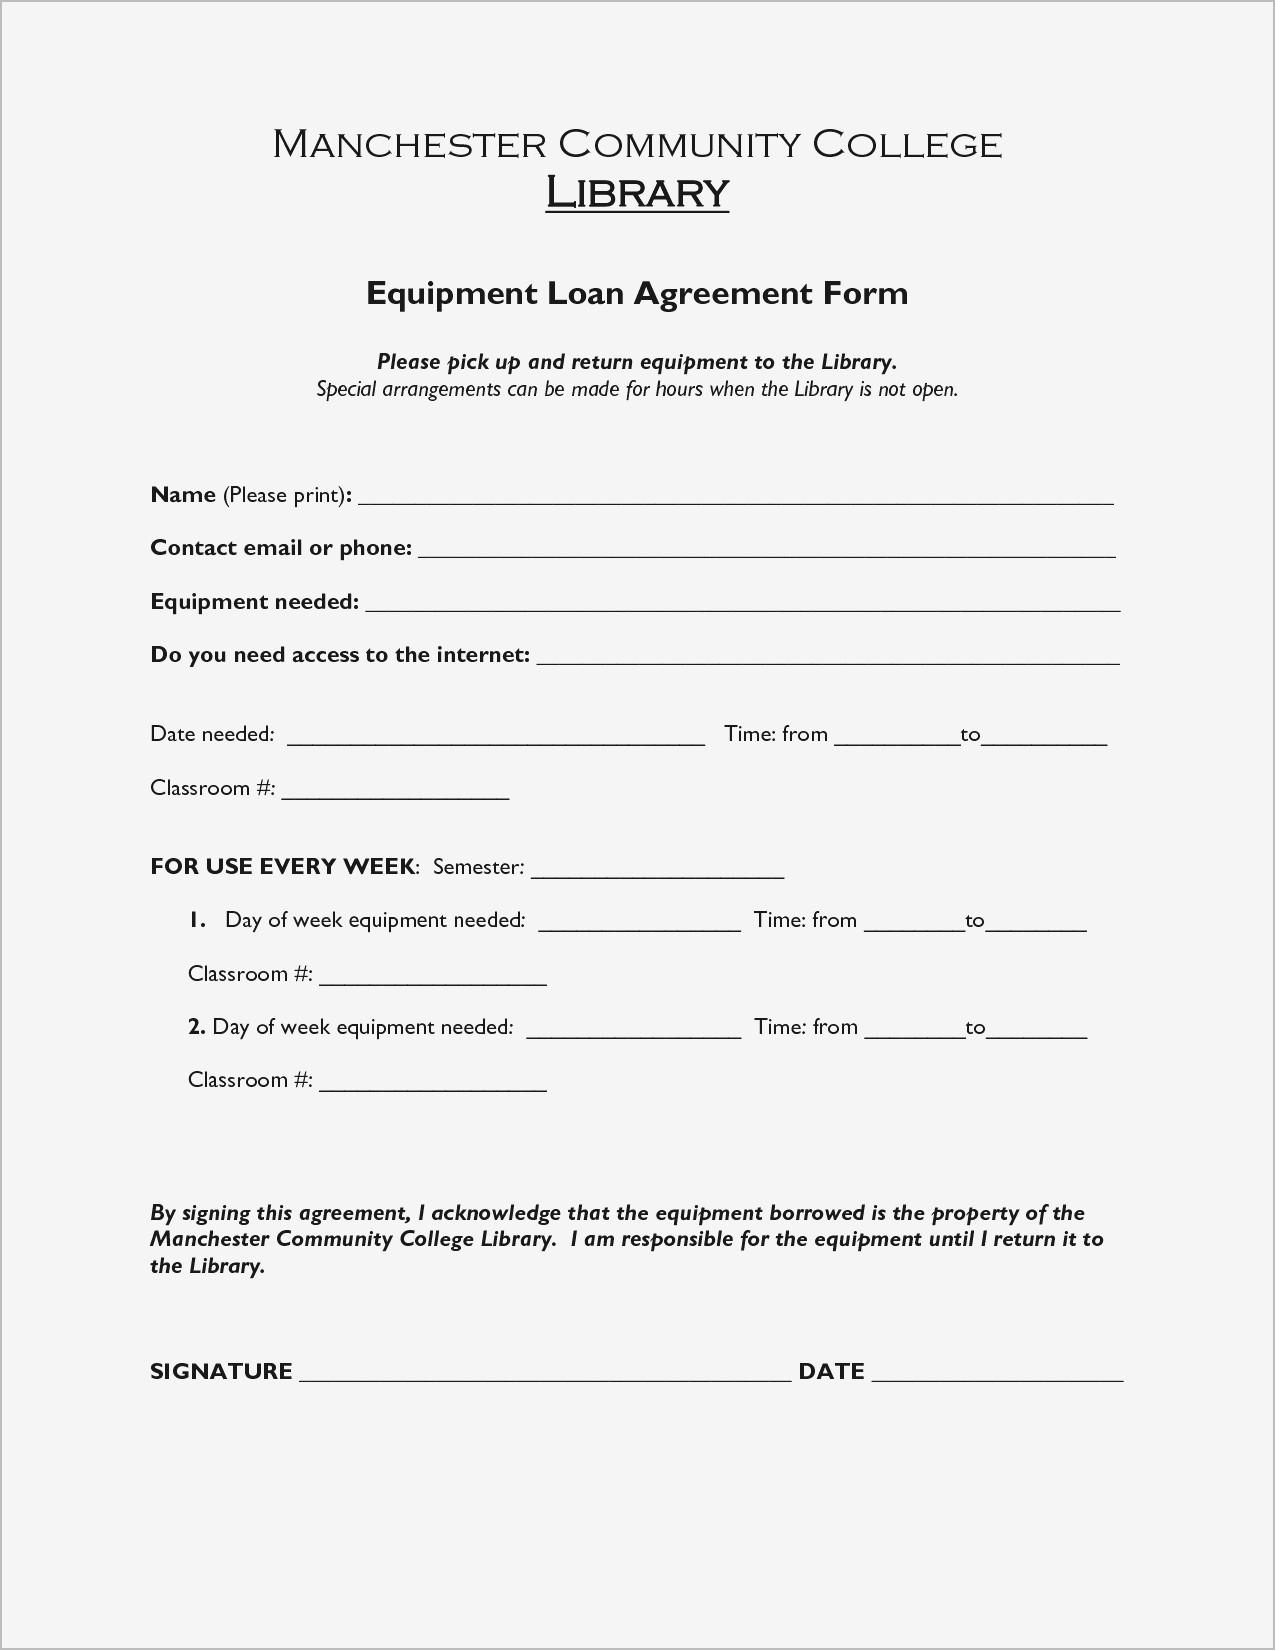 Demo Equipment Loan Agreement Form